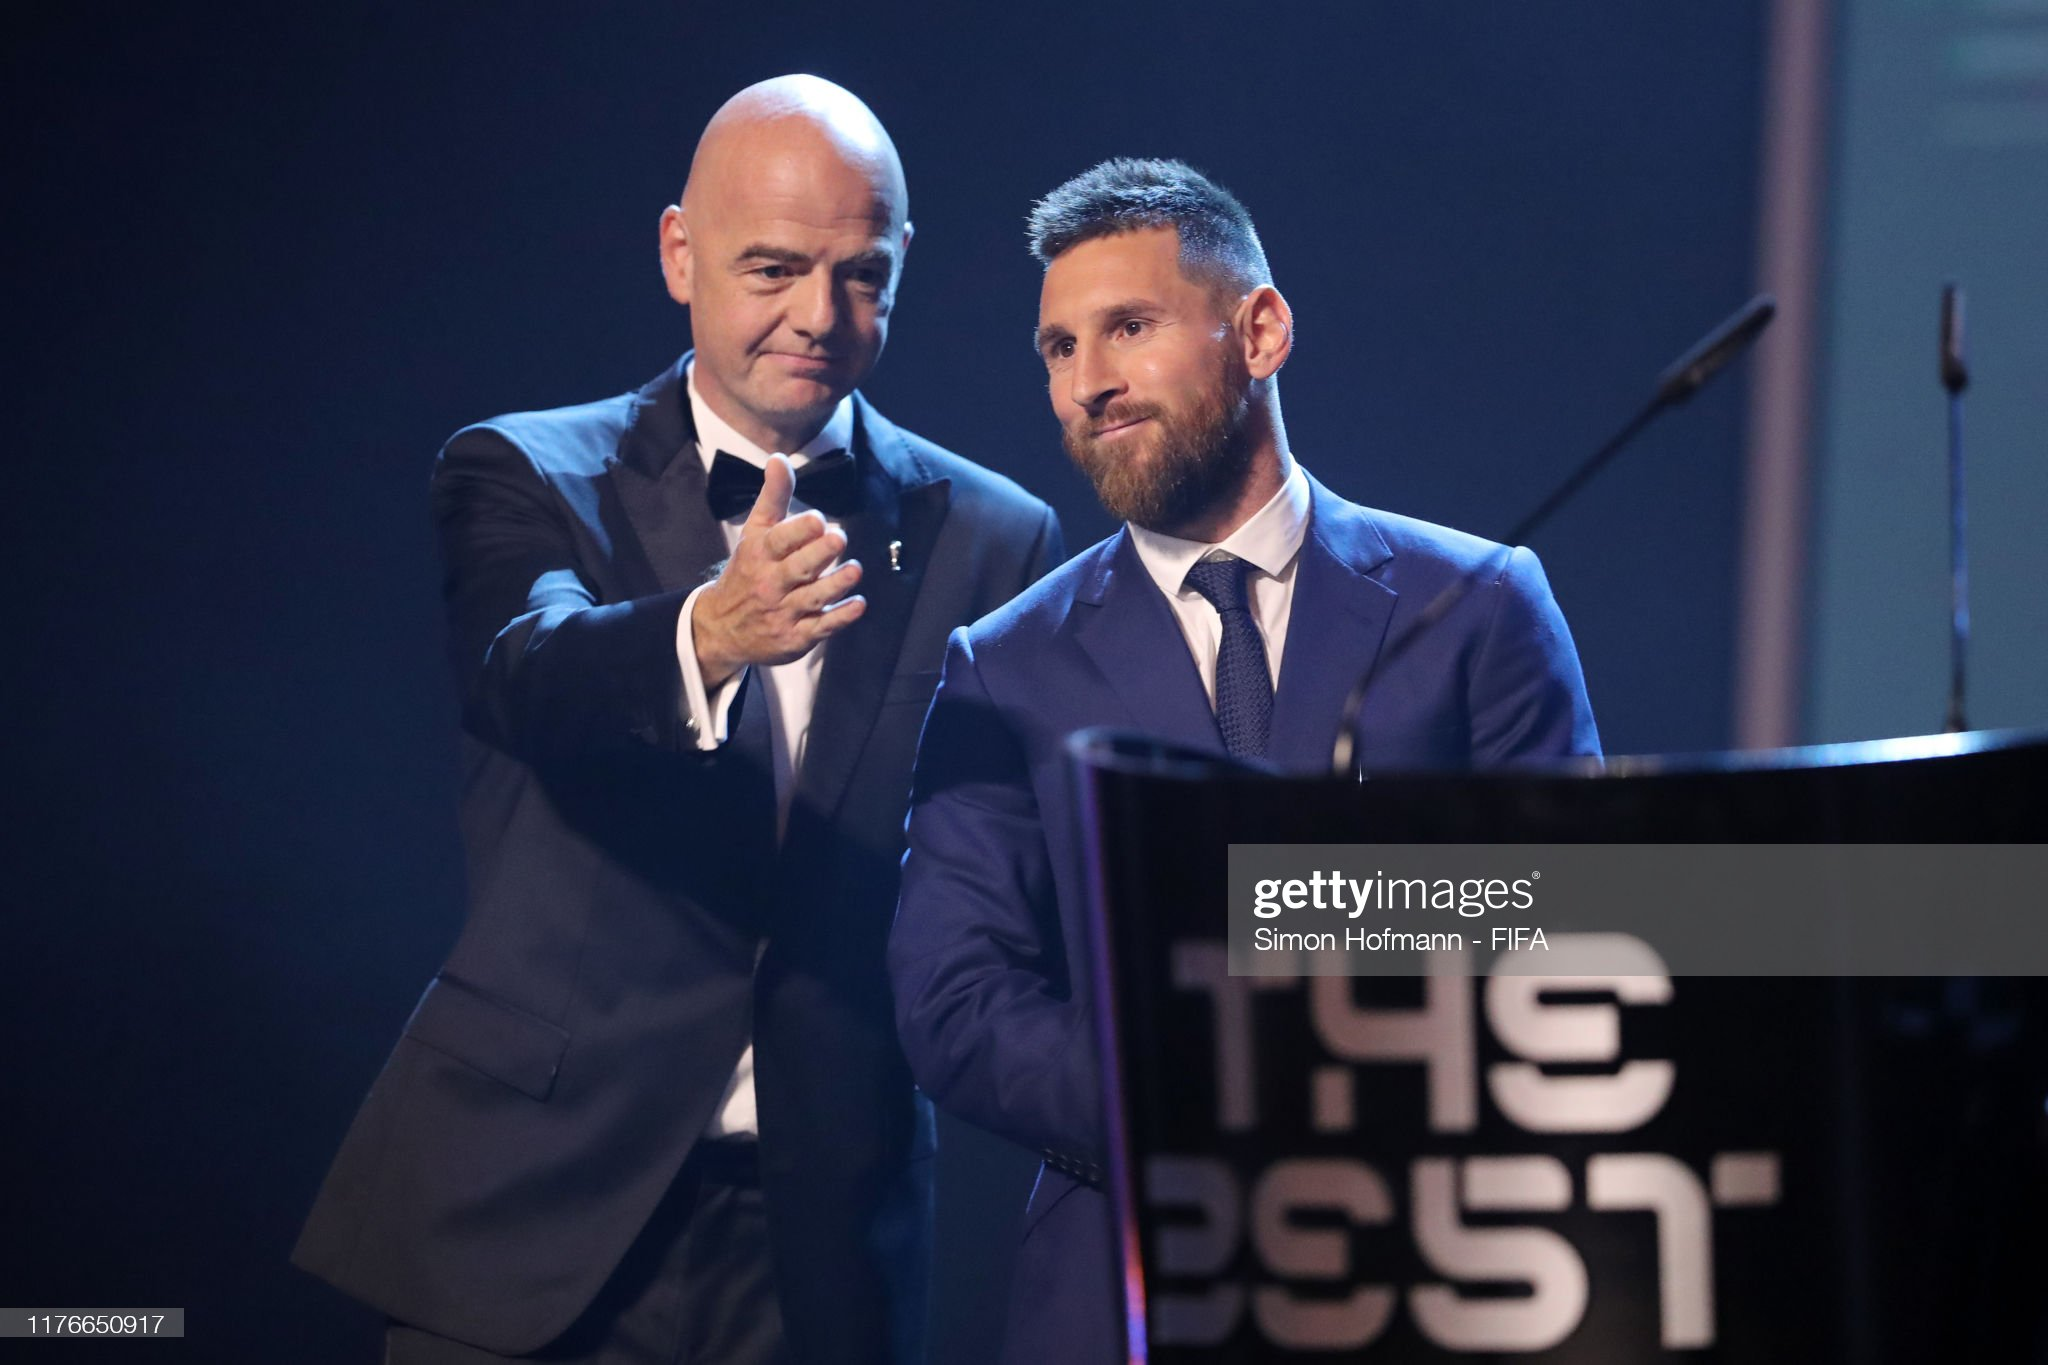 The Best FIFA Football Awards 2019 Lionel-messi-of-fc-barcelona-and-argentina-receives-the-the-best-fifa-picture-id1176650917?s=2048x2048